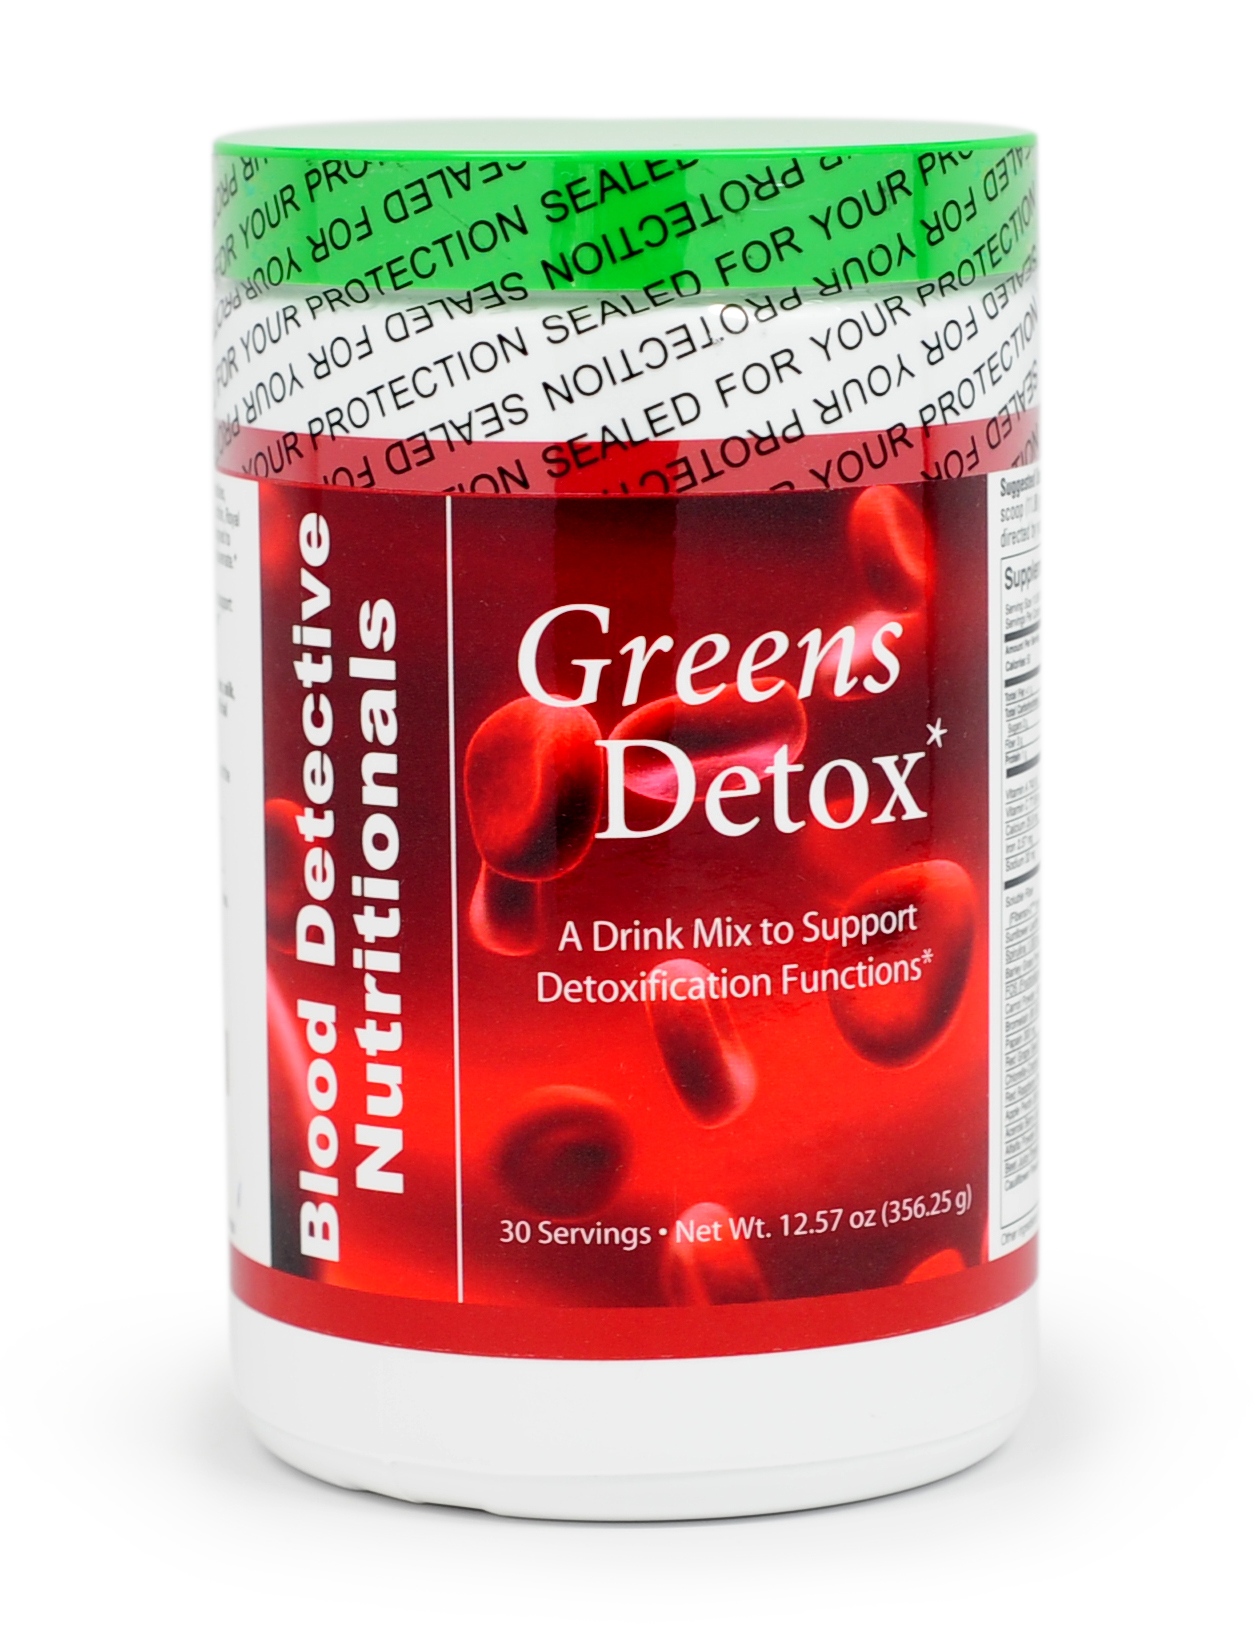 THIS PRODUCT IS NOW CALLED DTOX IV